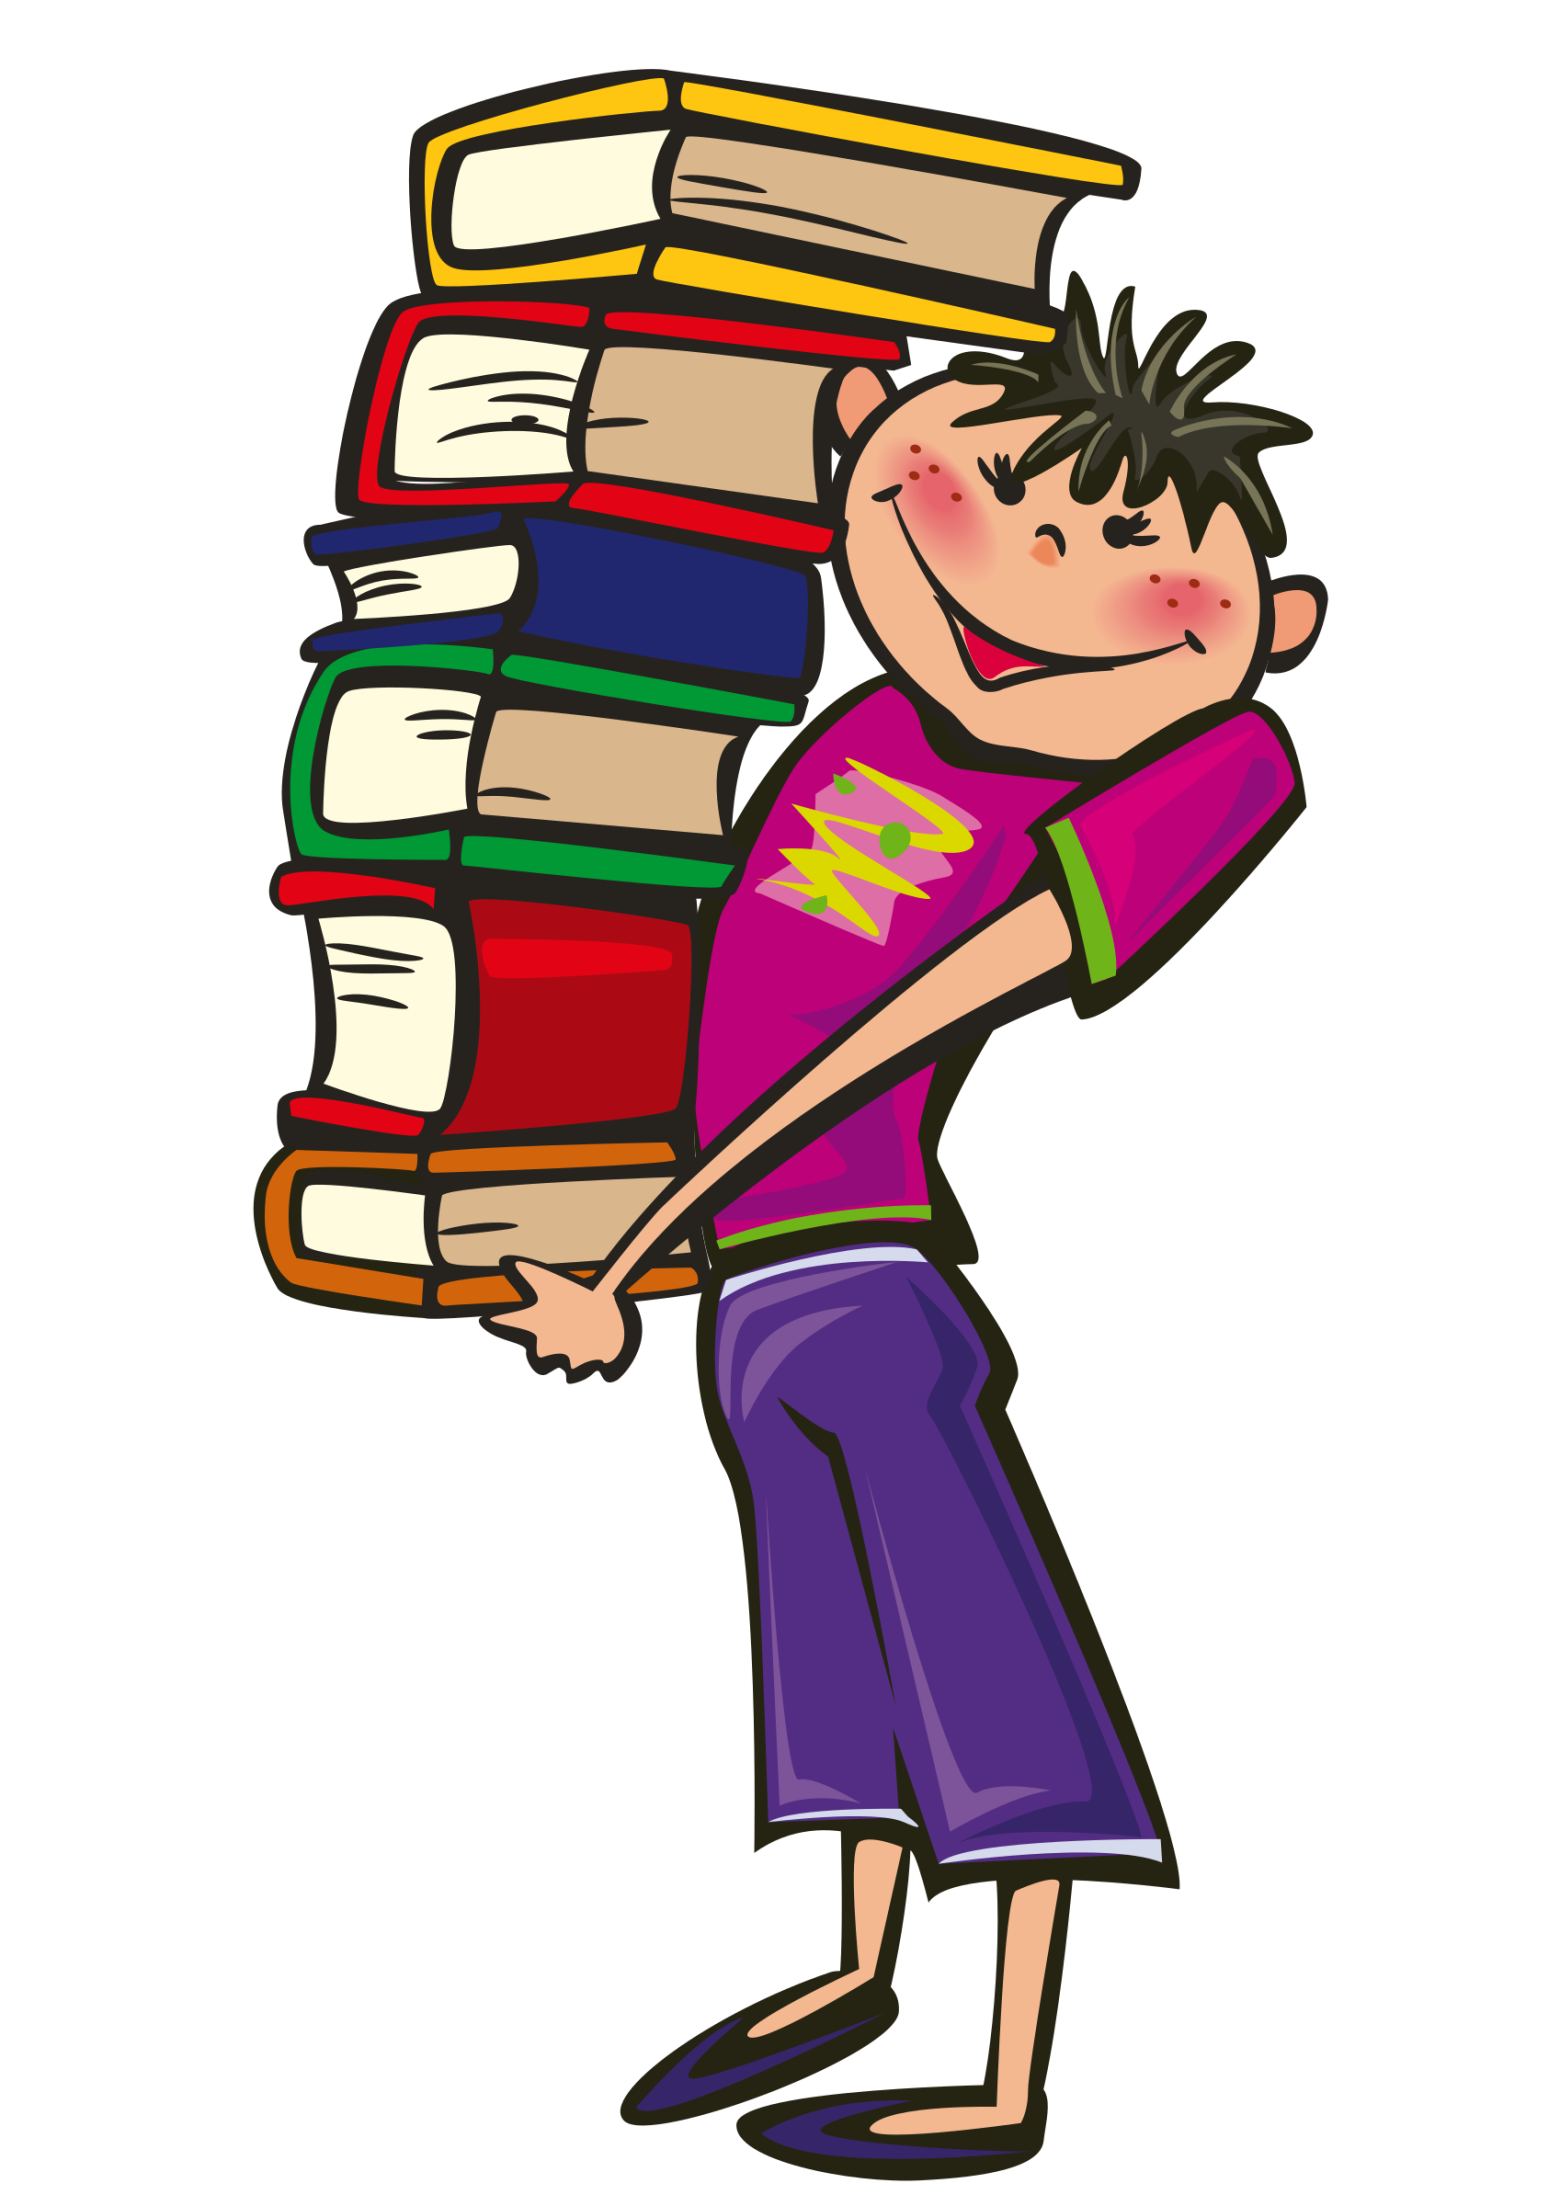 Student reading a book clipart banner library download Book Student Reading Clip art - study clipart 1560*2206 transprent ... banner library download